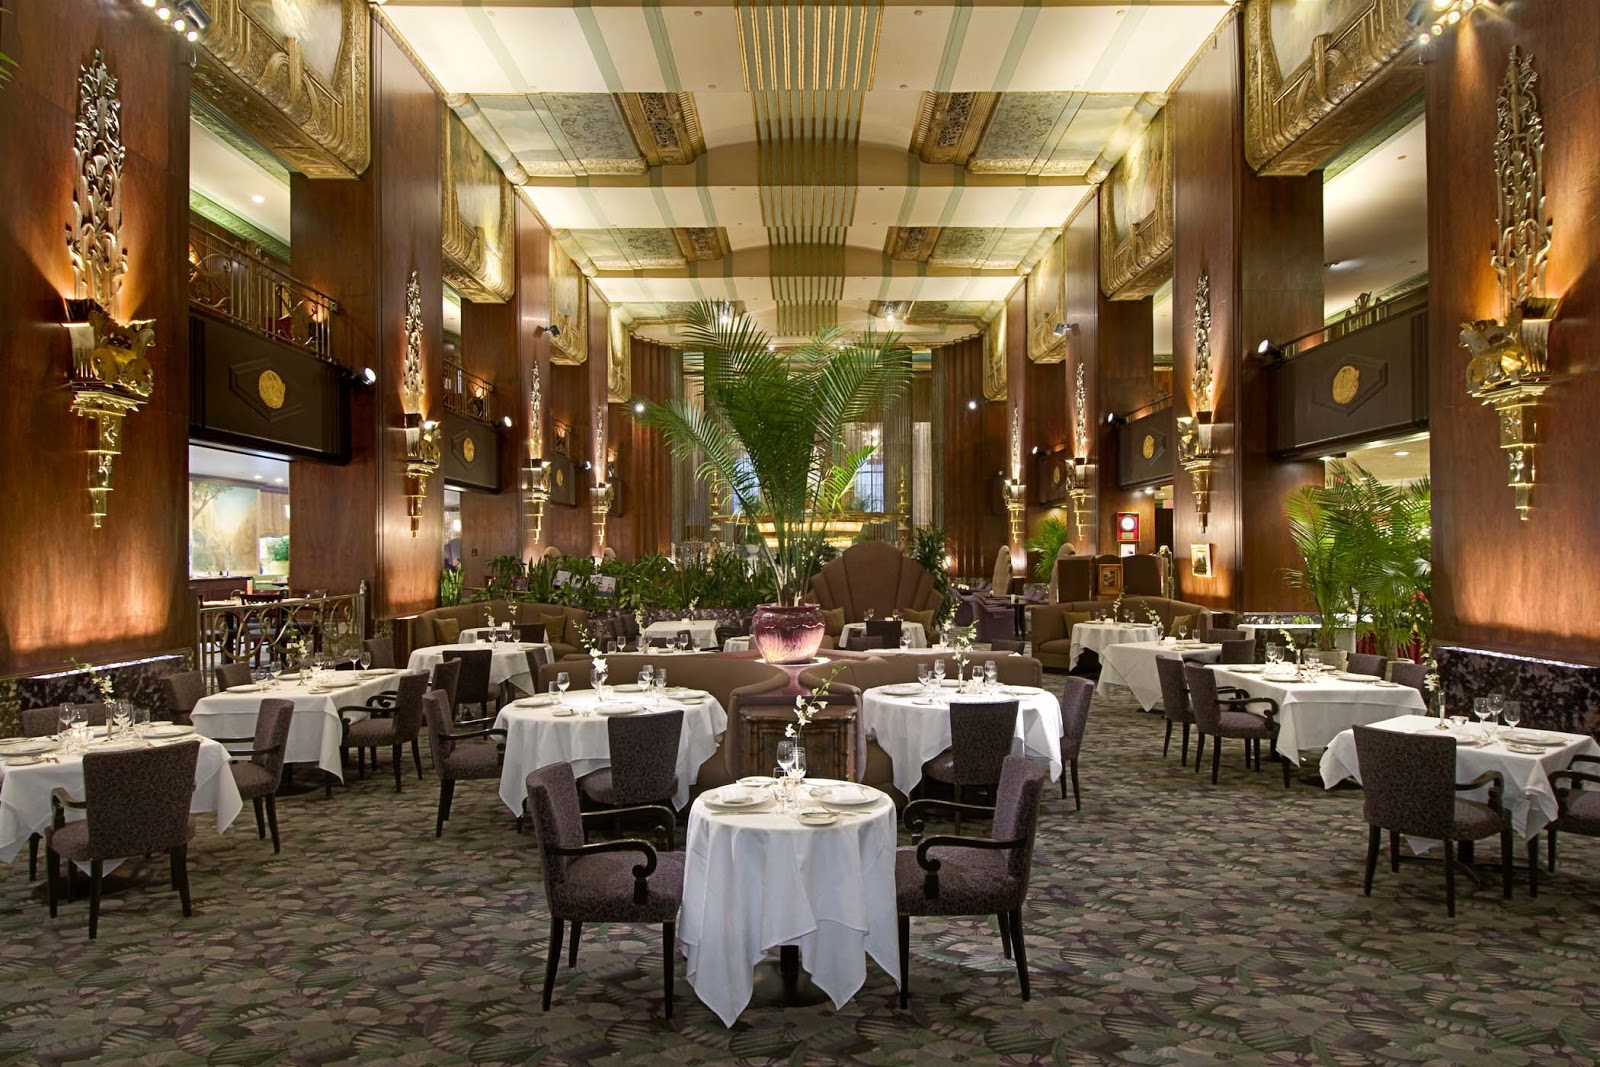 Orchids At Palm Court Hilton Cincinnati Netherland Plaza Named One Of Top 100 Restaurants